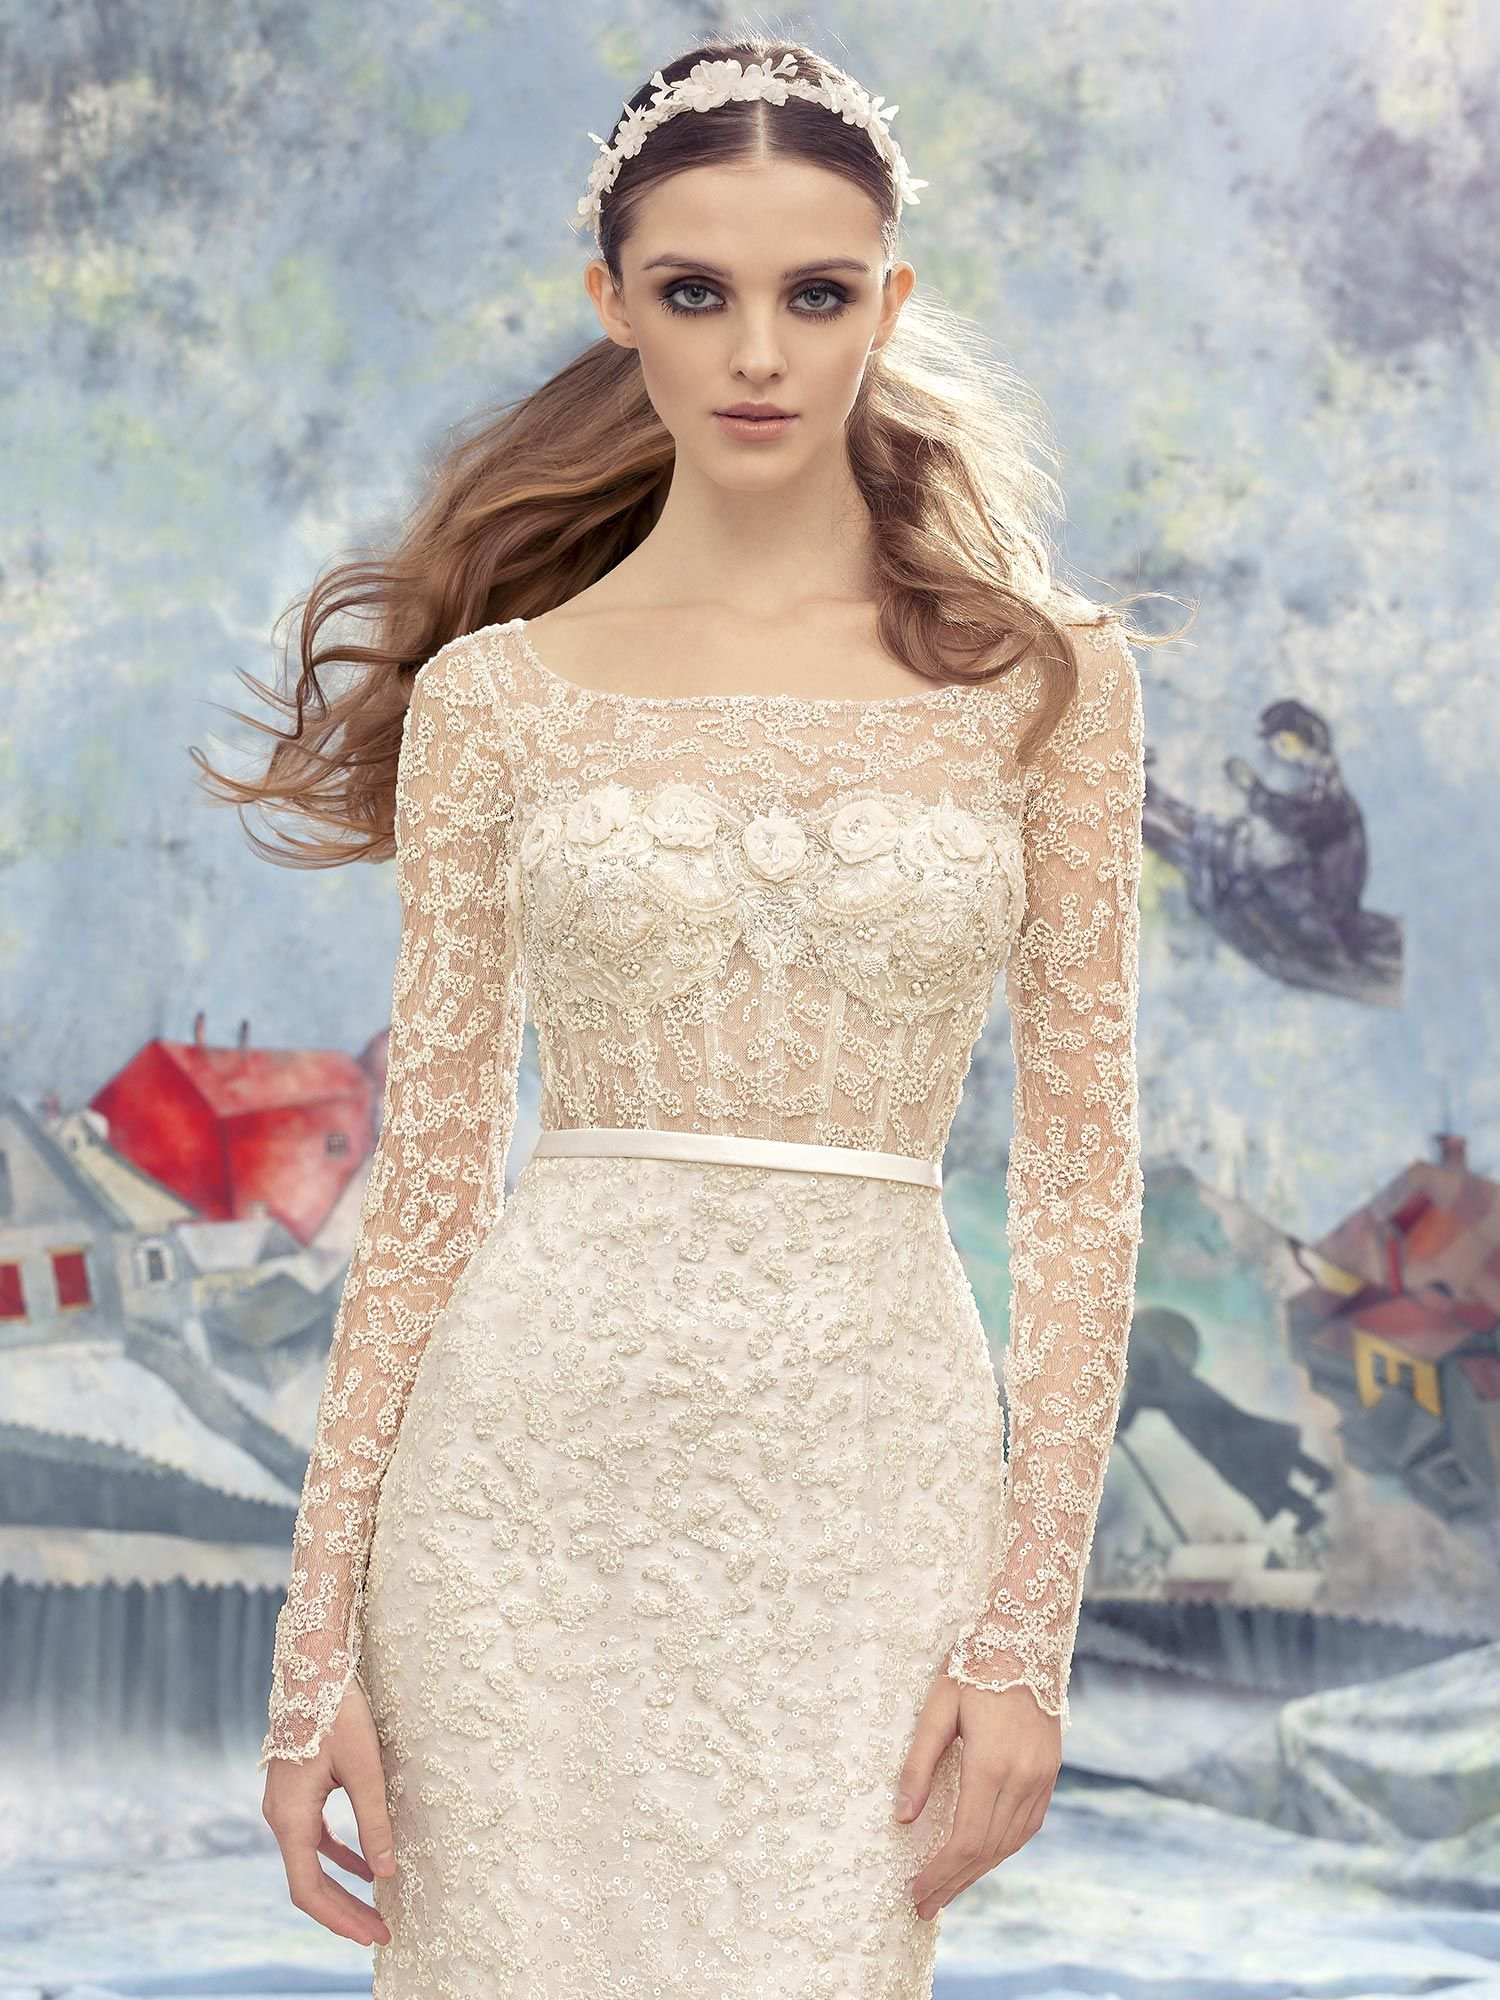 Papilio fitted lace wedding gown with sheer lace bodice in